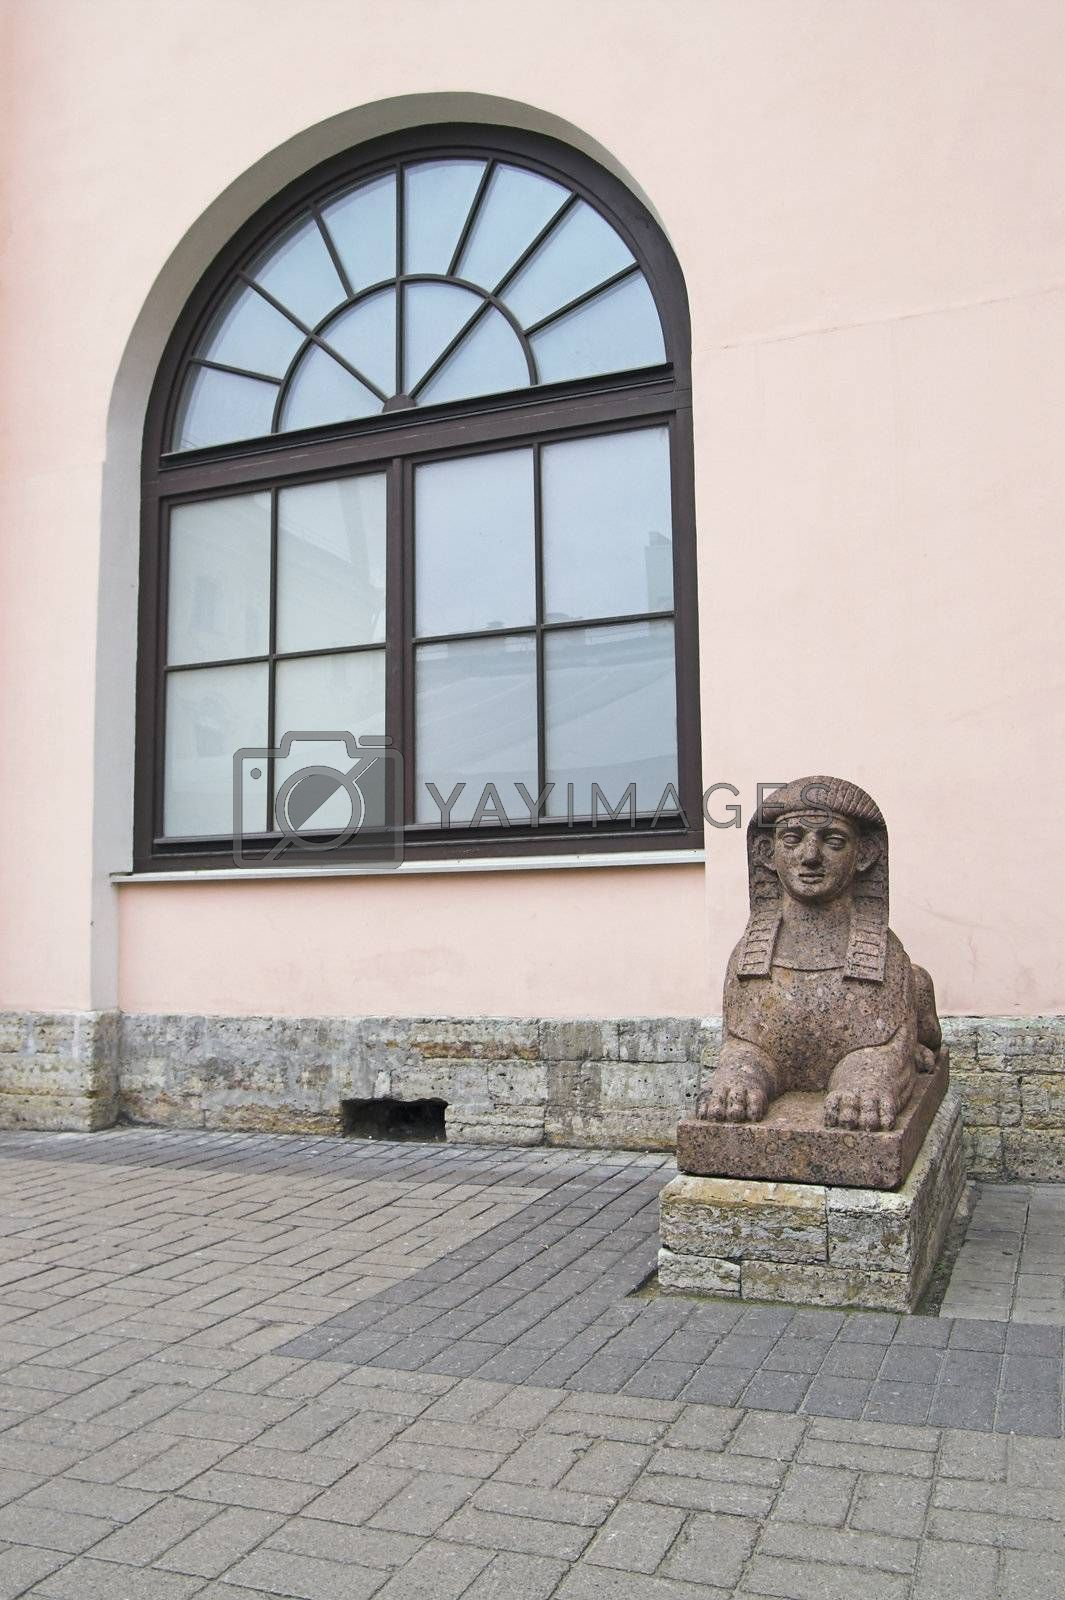 An Egyptian Sphinx at a backyard entrance of Stroganoff's Palace, an old-time building, in Saint Petersburg, Russia.